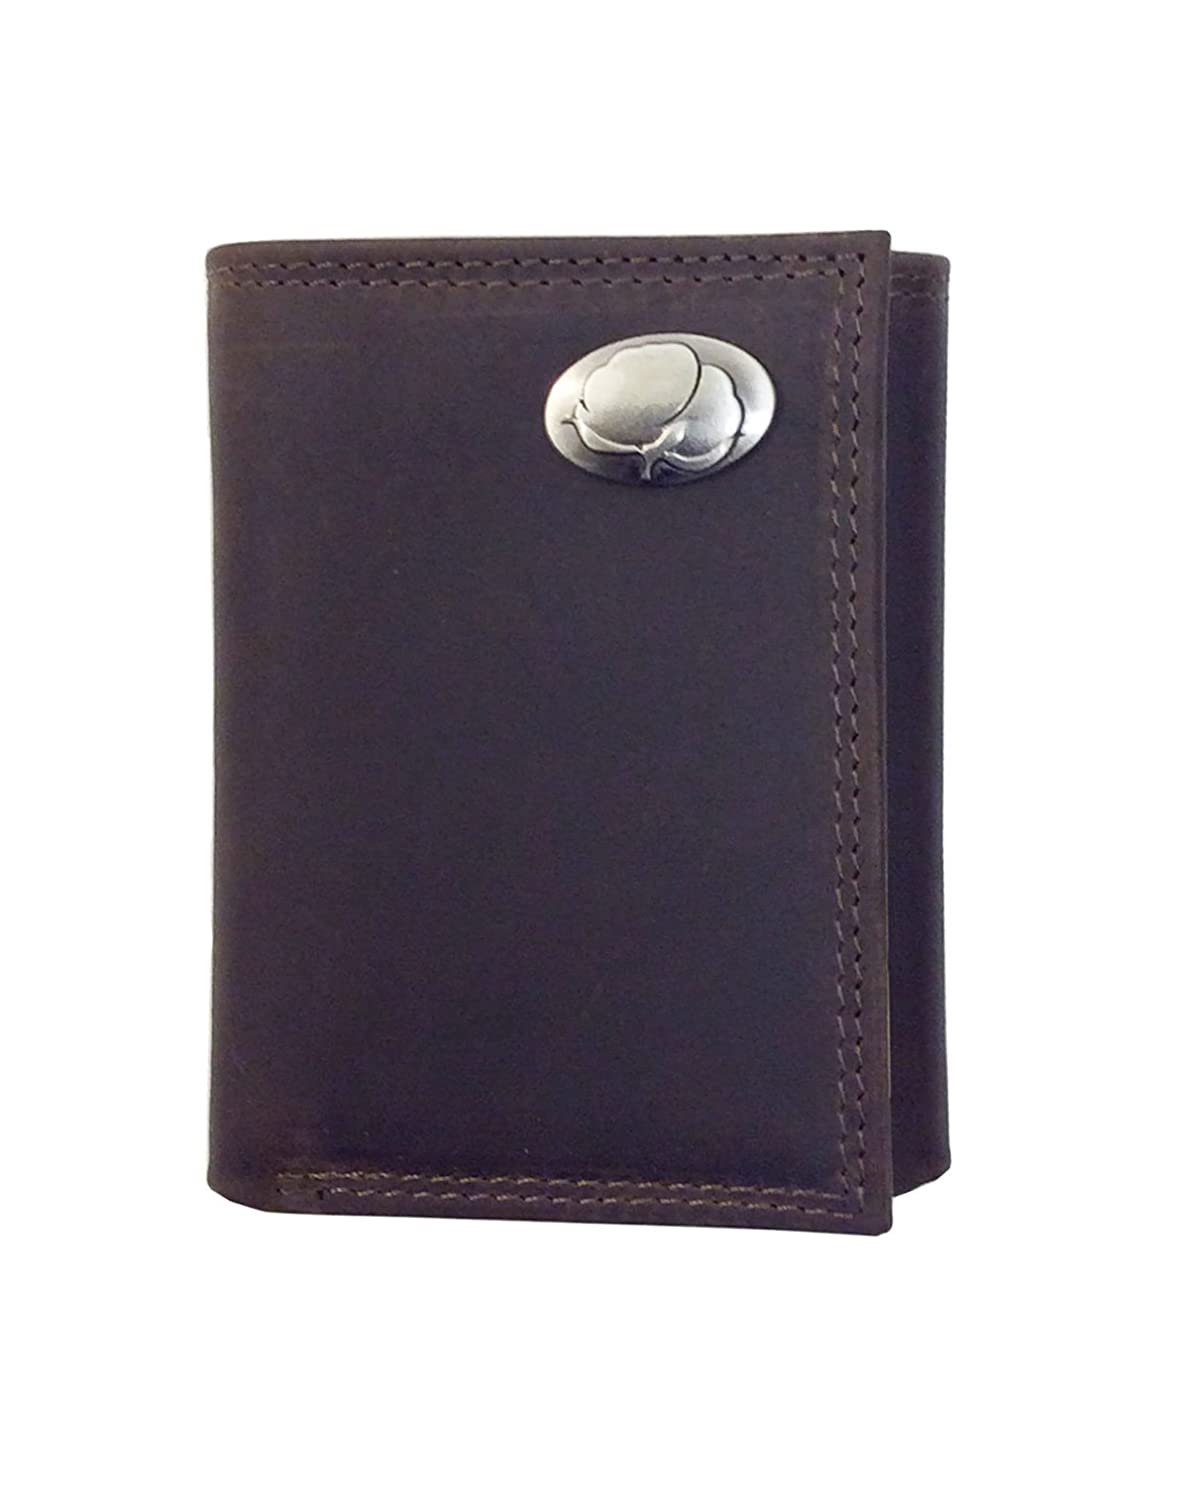 Leather Crazy Horse Brown Trifold Wallet Shotgun Shell